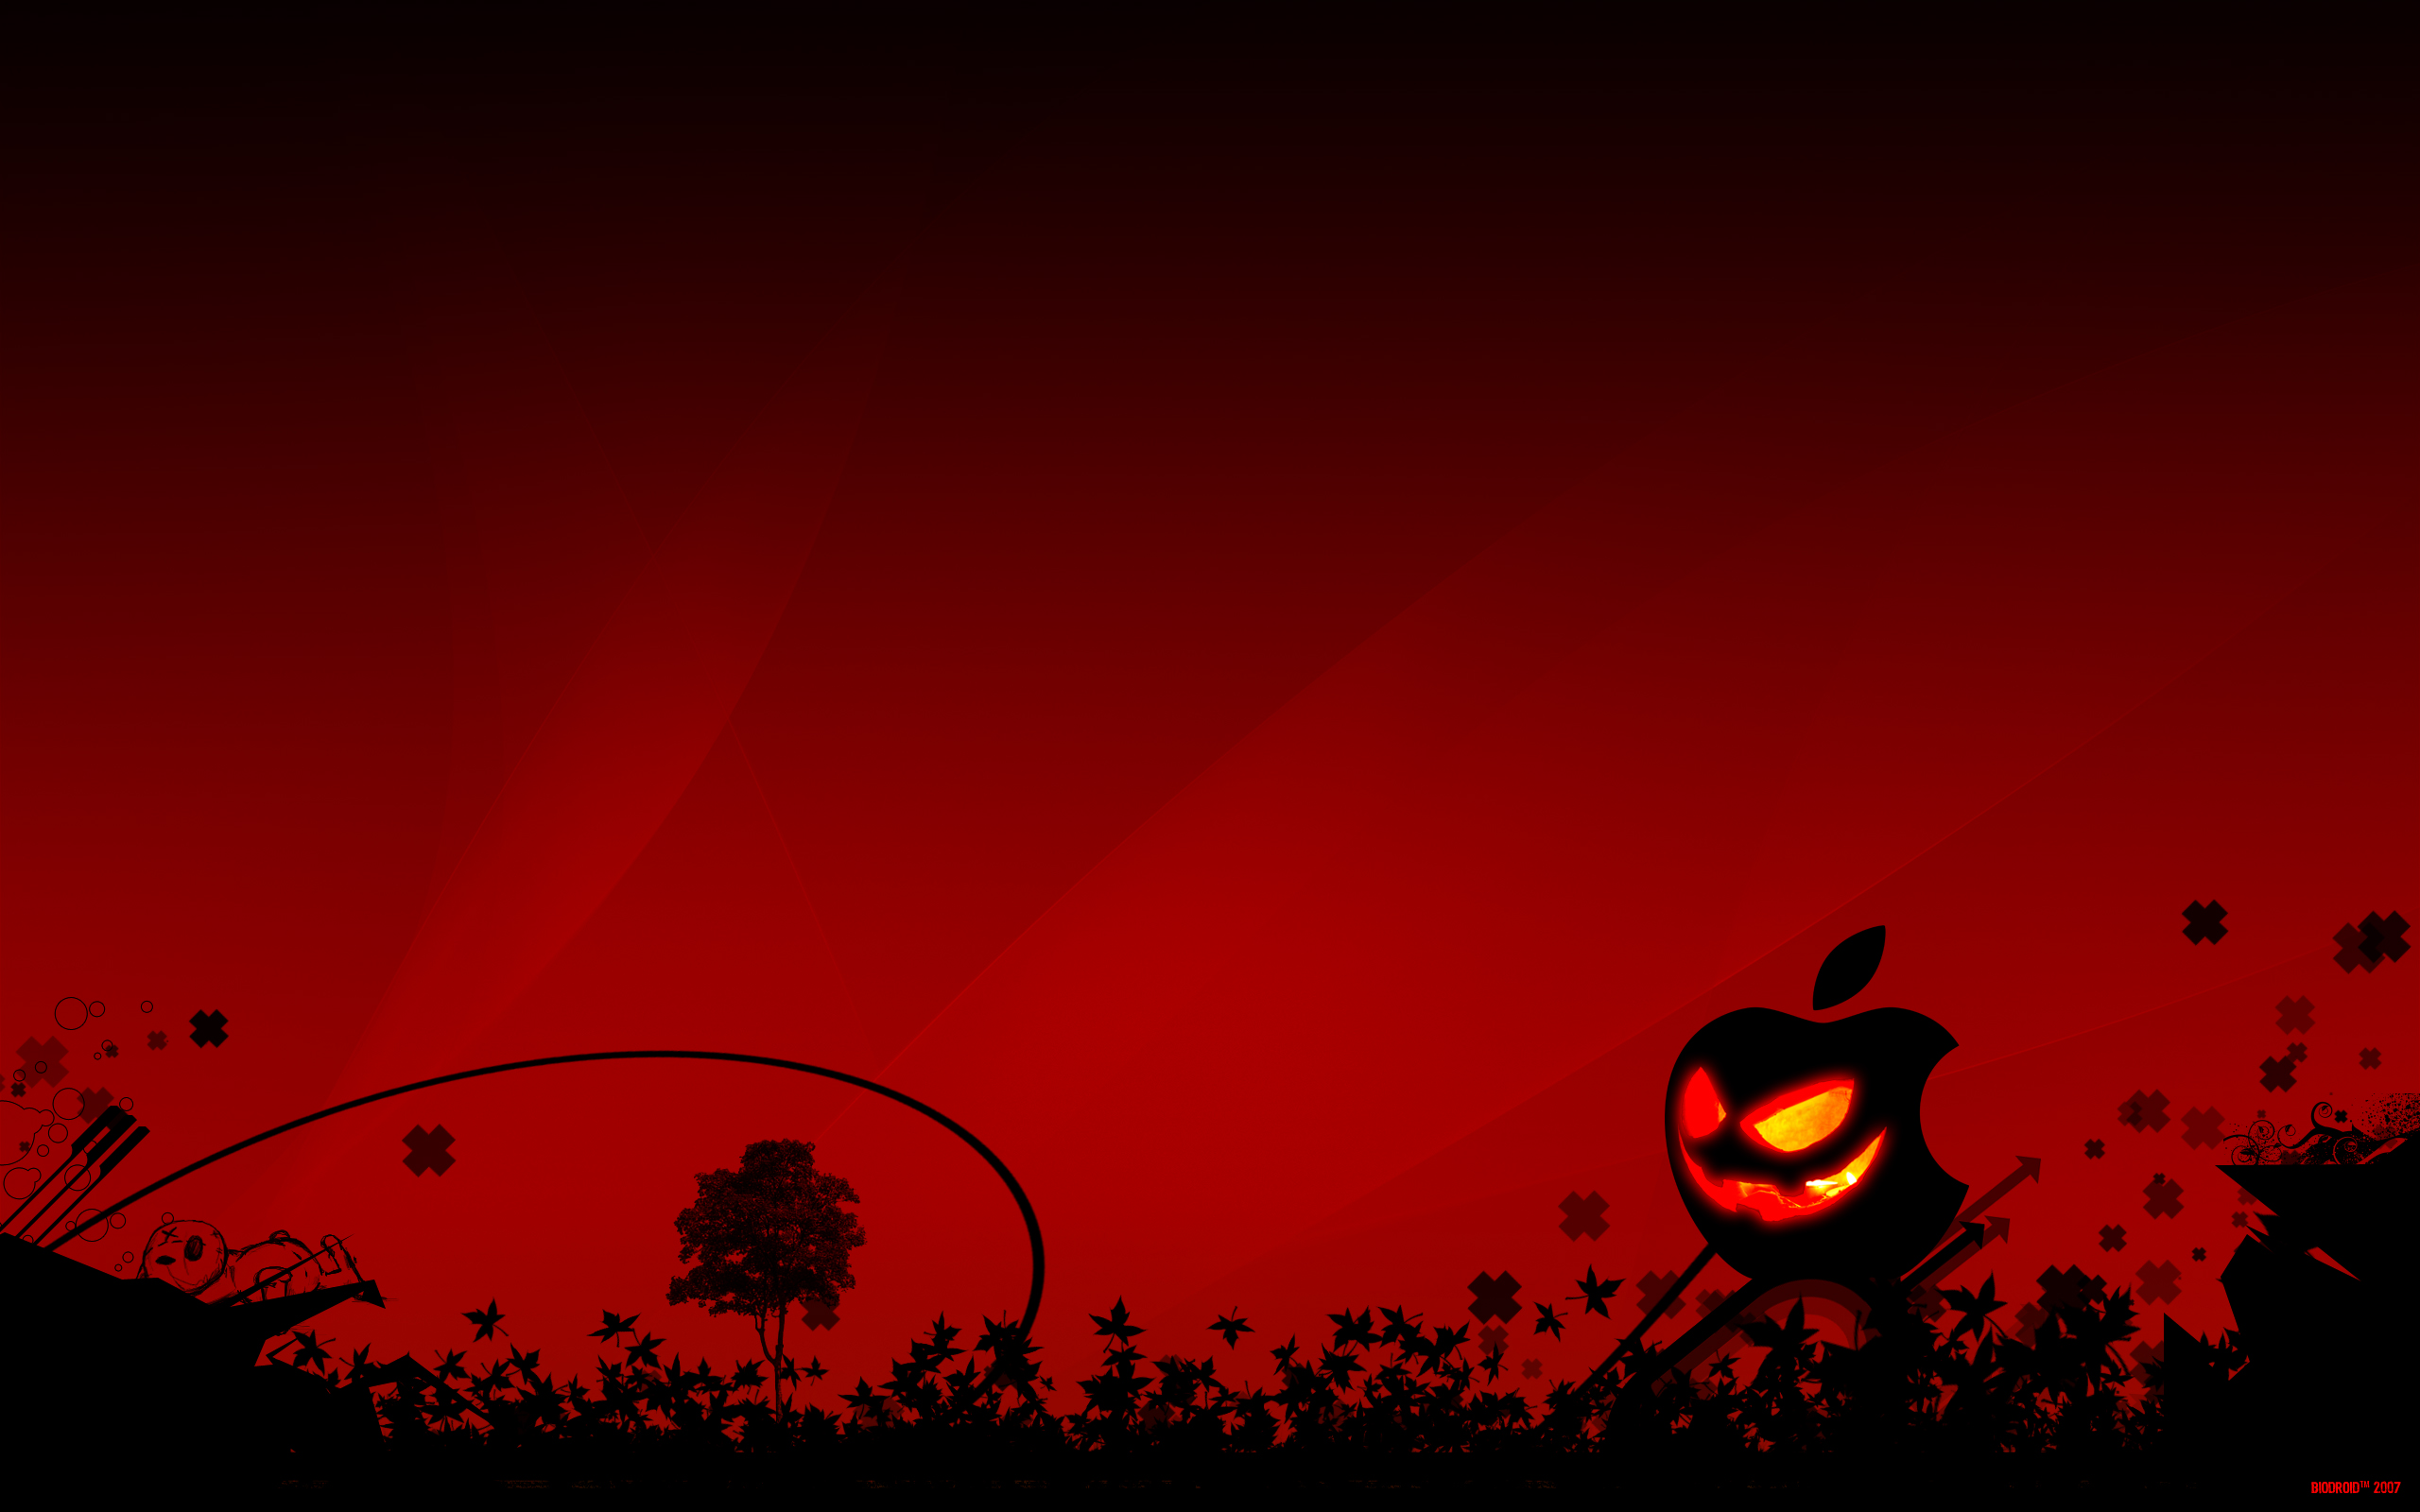 Think_Halloween_2012 HD Wallpaper 2